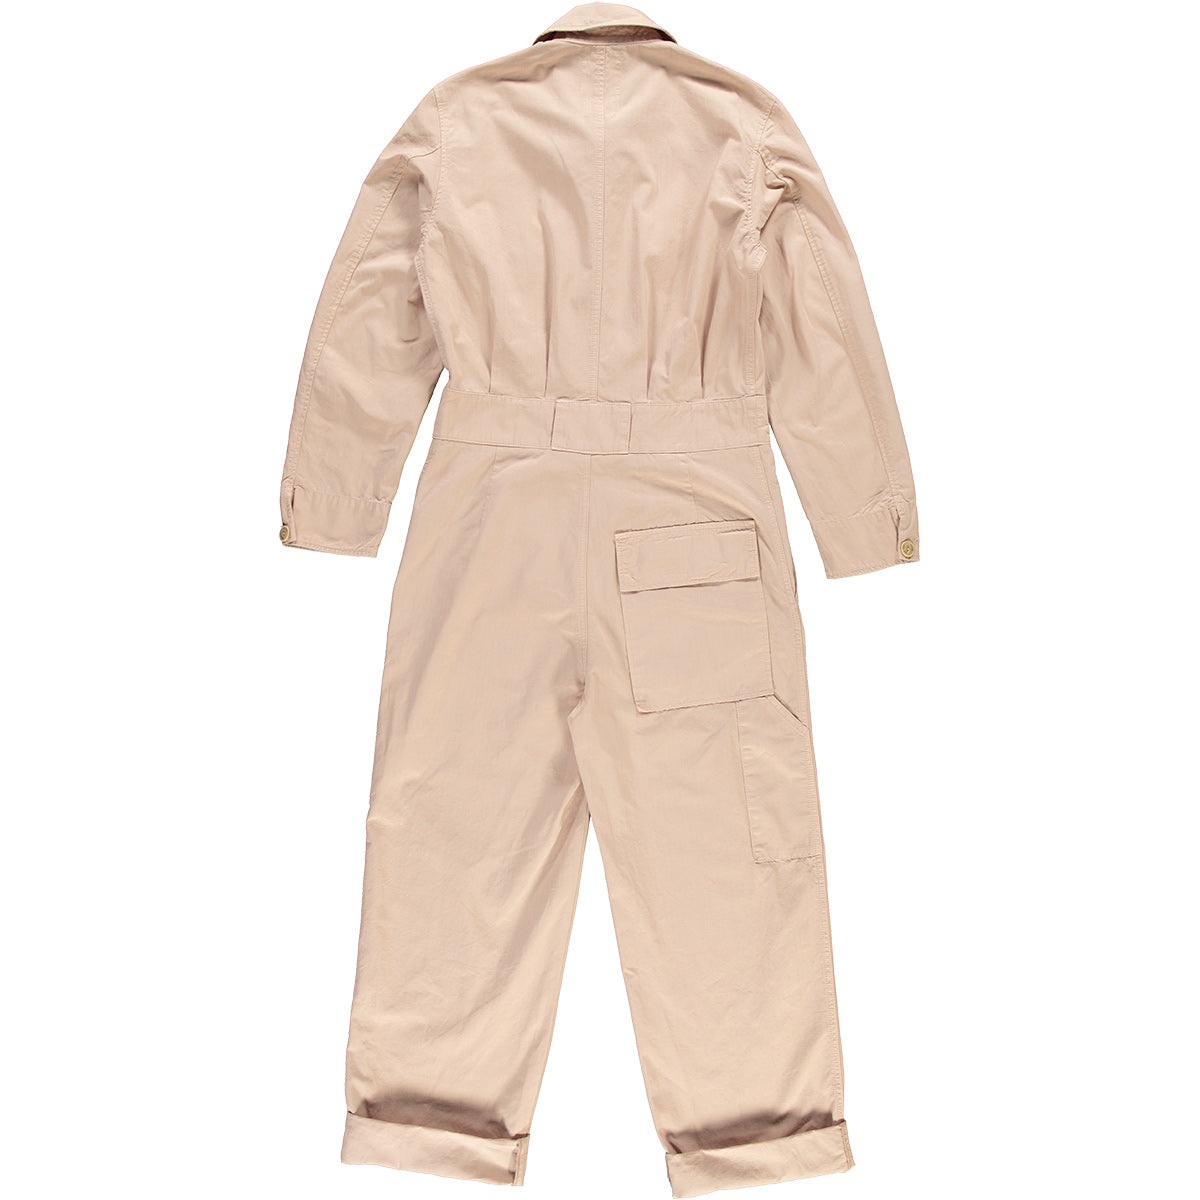 G O D Coveralls Ripstop Organic Cotton Shell Eat Dust